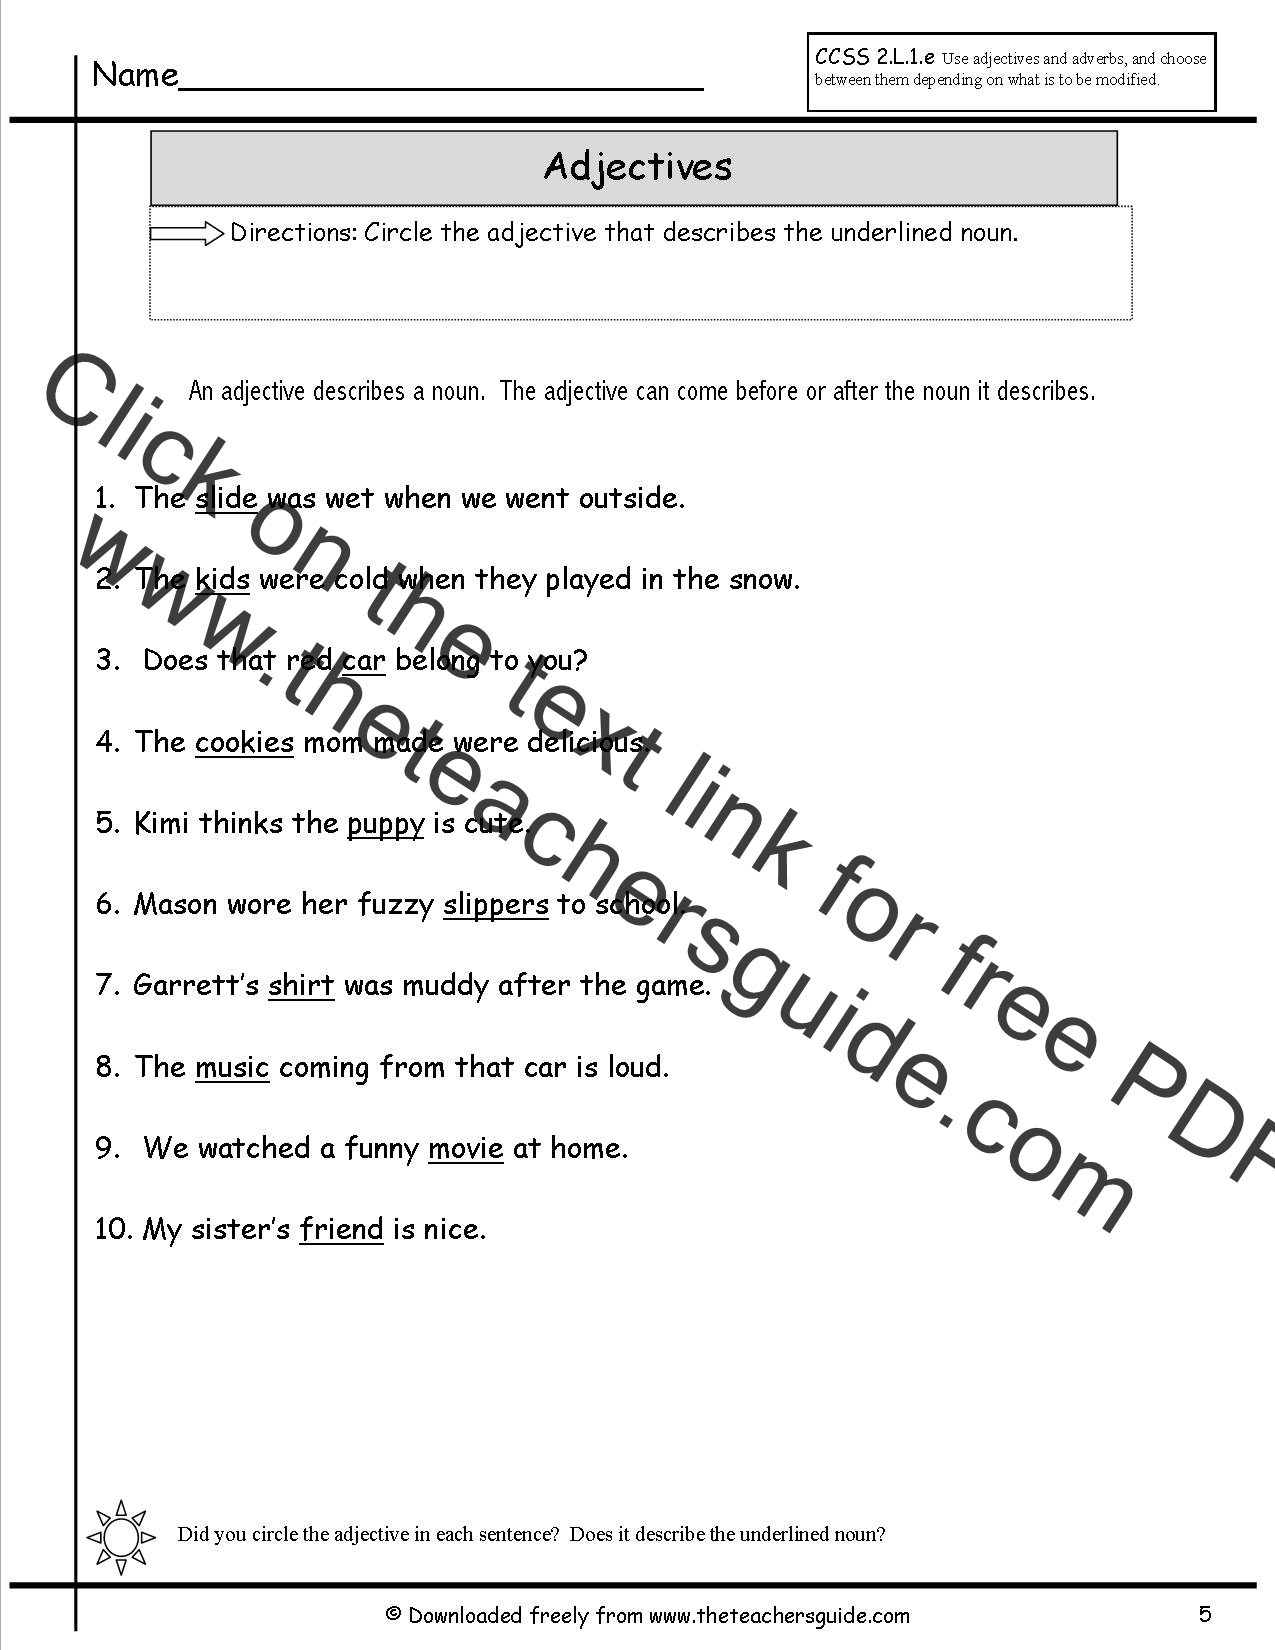 Adjectives Worksheets from The Teacher's Guide